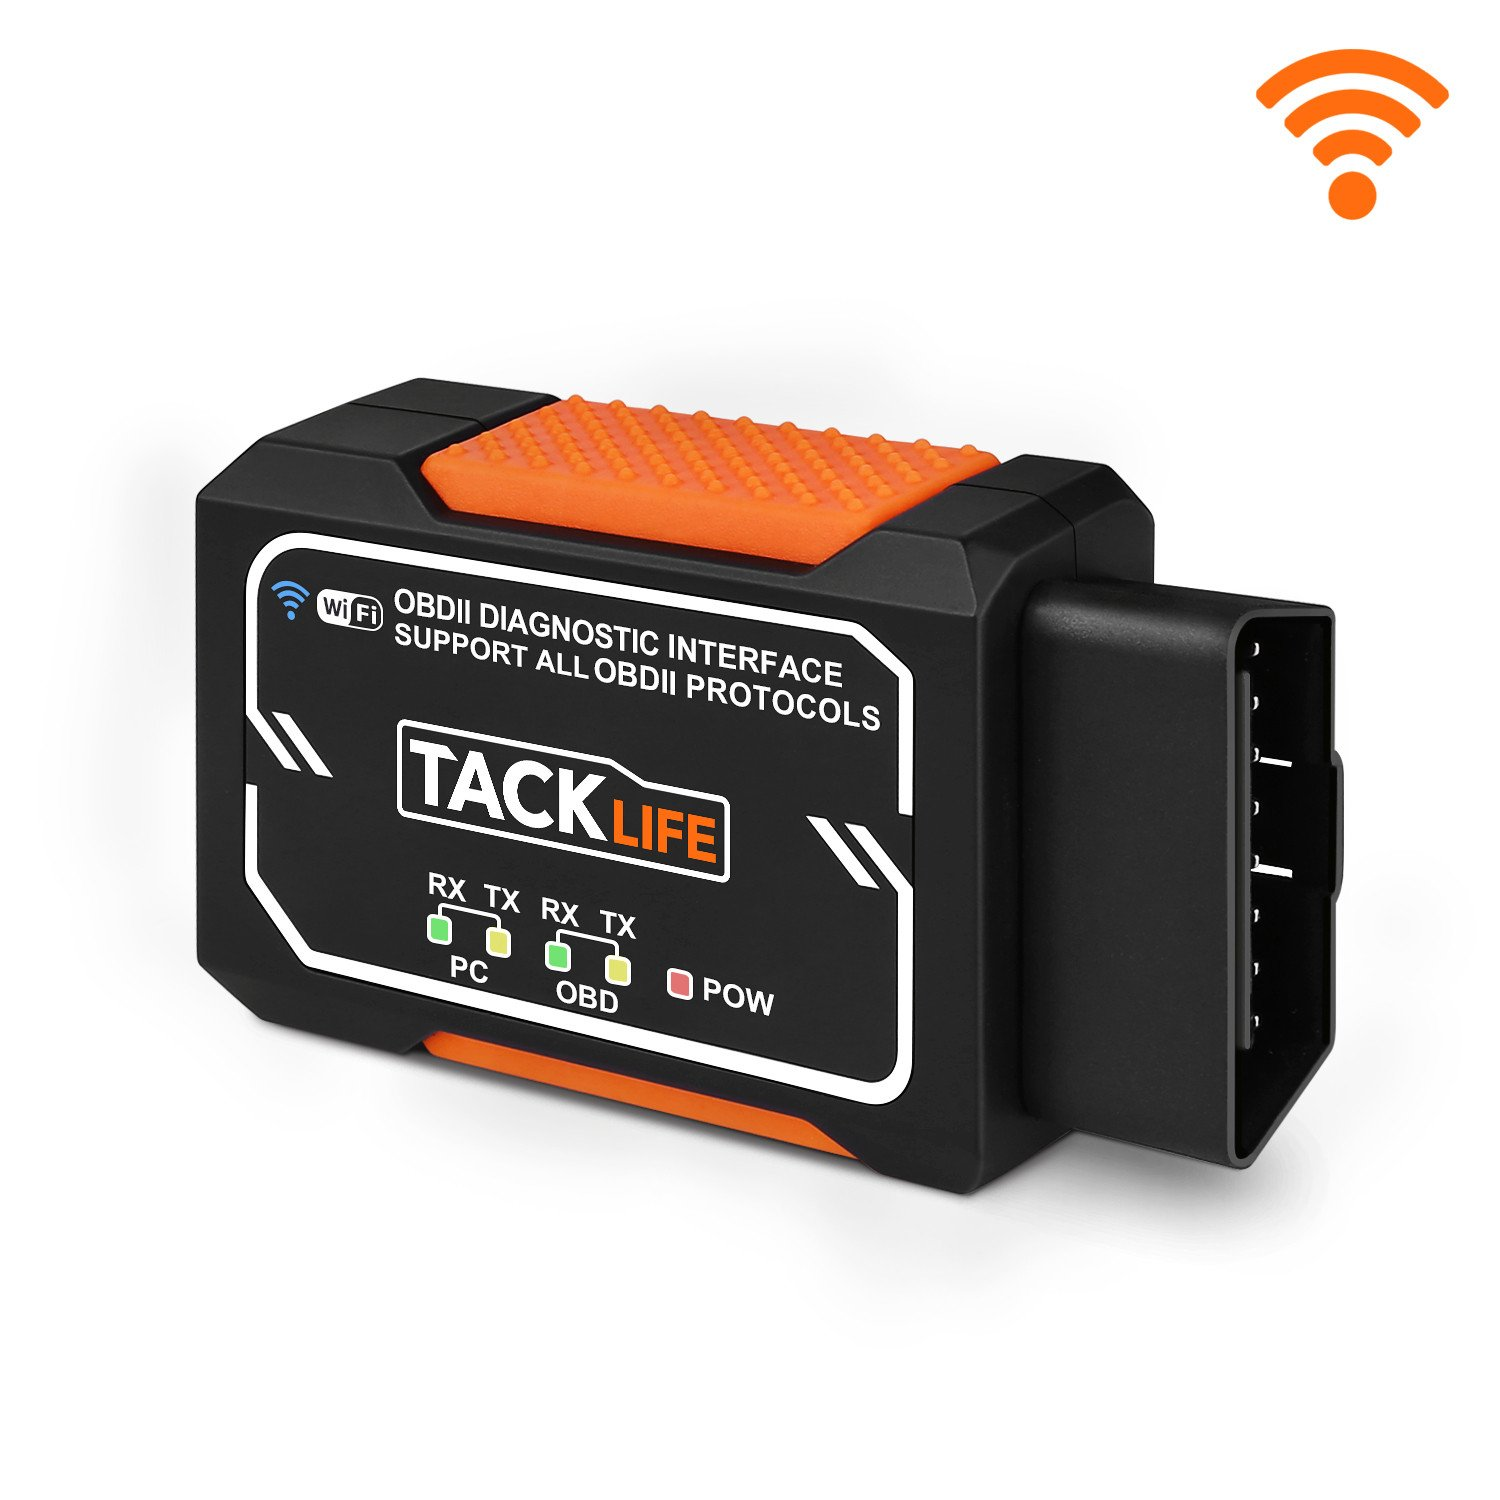 Car WIFI OBD2, Tacklife Wireless OBD2 Diagnostic real-time scanning